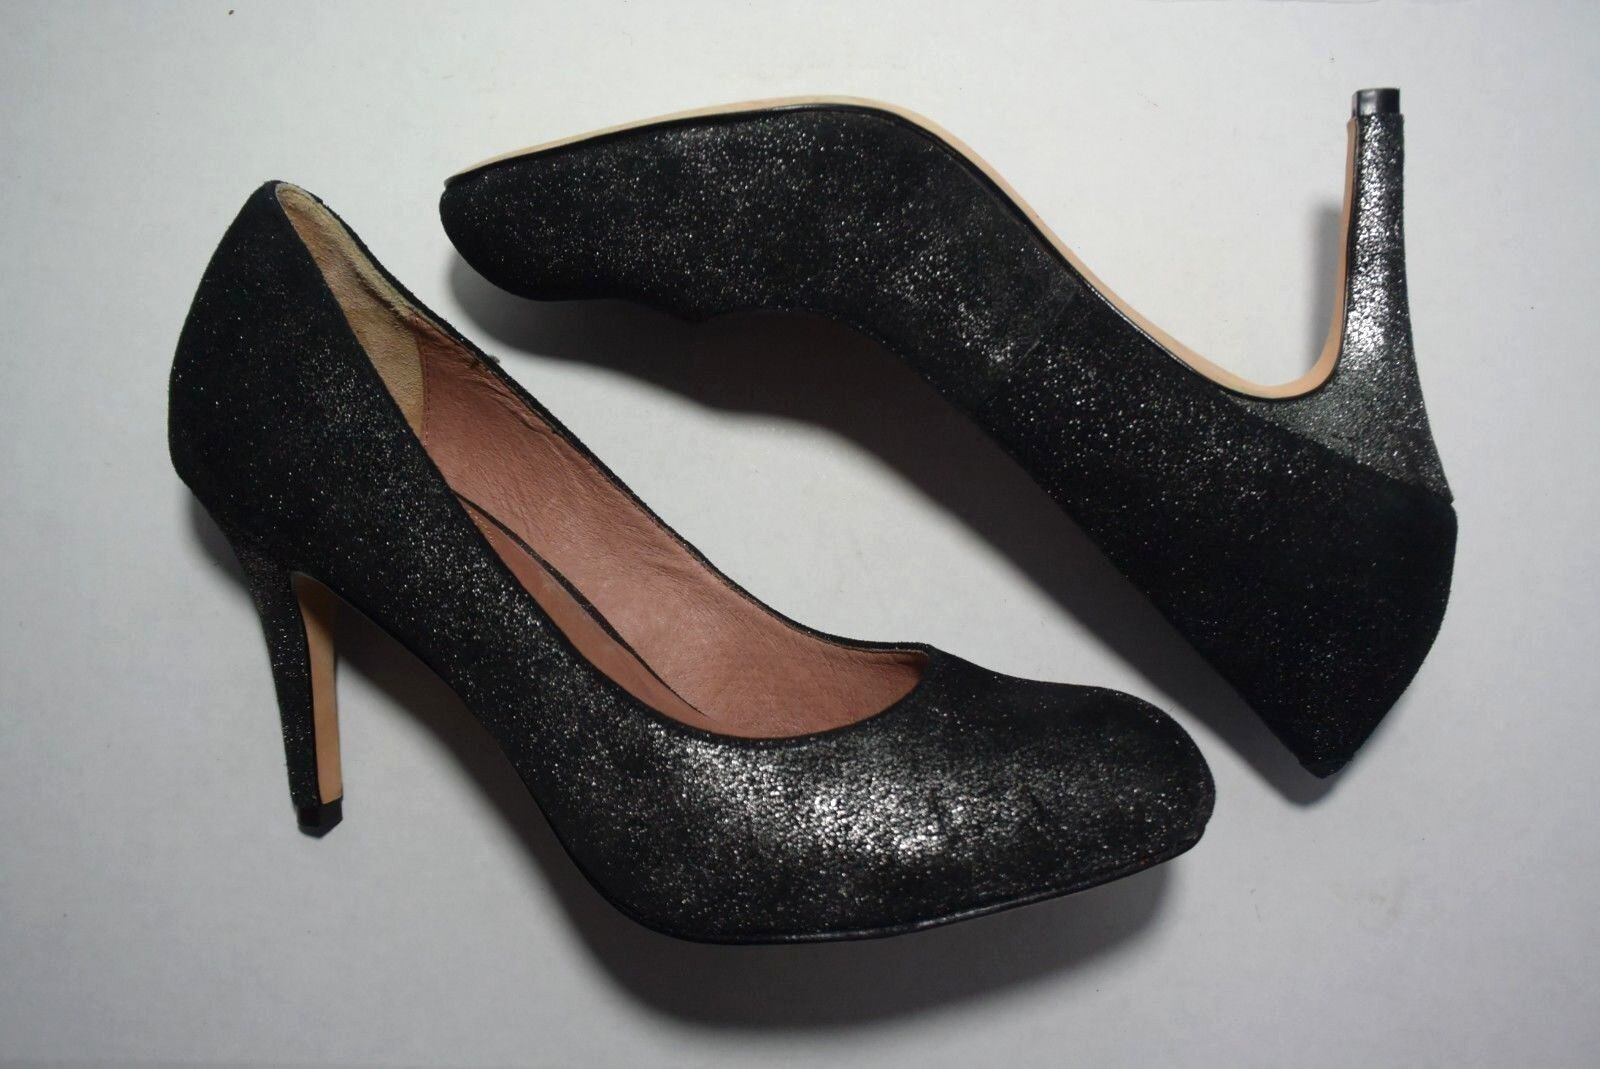 Corso Como Sparkly Black Round Toe Leather High Heel Pumps Shoes Size 9.5